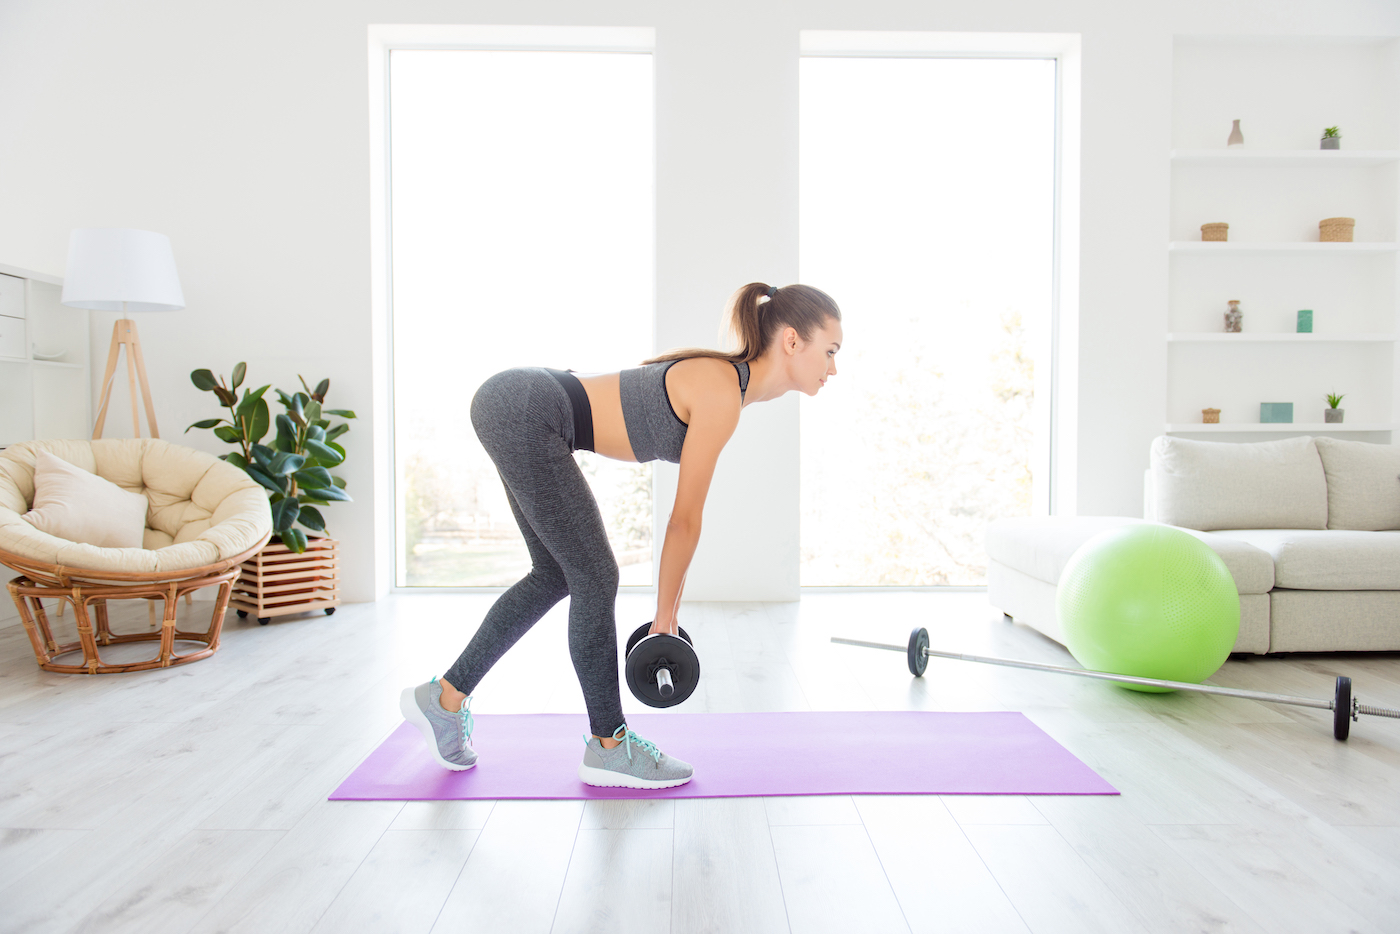 How to lift weights at home whether you're a fitness newb or a full-blown body builder